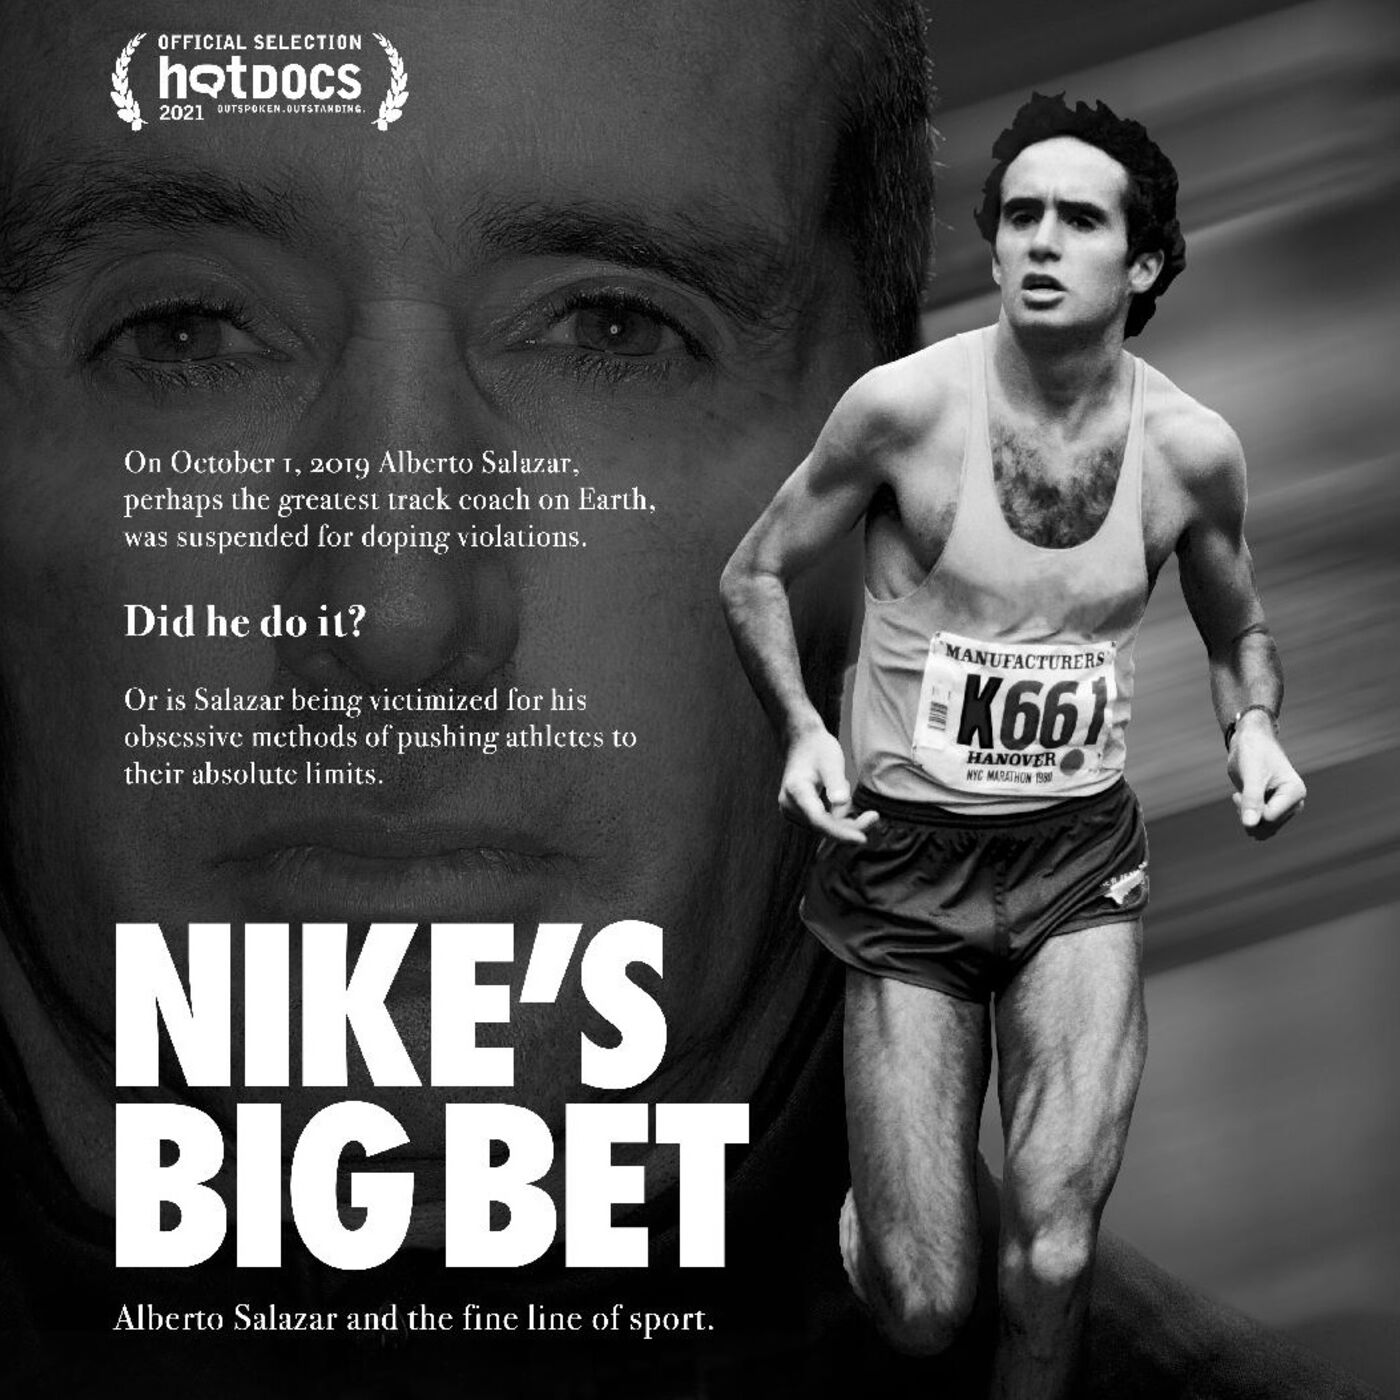 Ep 279 - Nike's Big Bet - The Salazar scandal documentary with director Paul Kemp